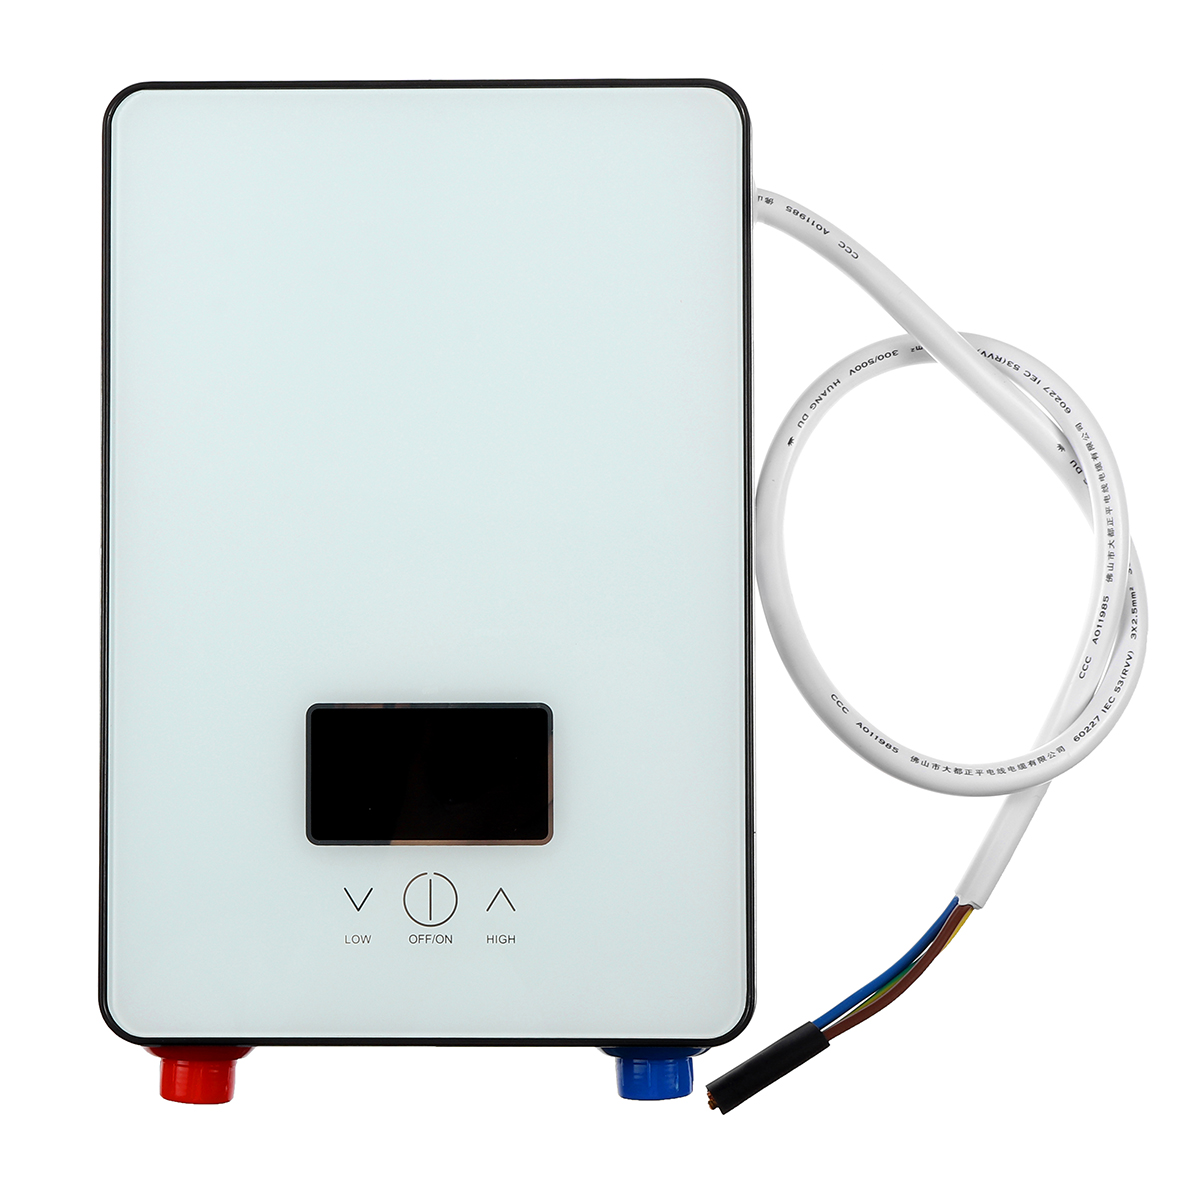 $59.90 for 6500W Tankless Electric Water